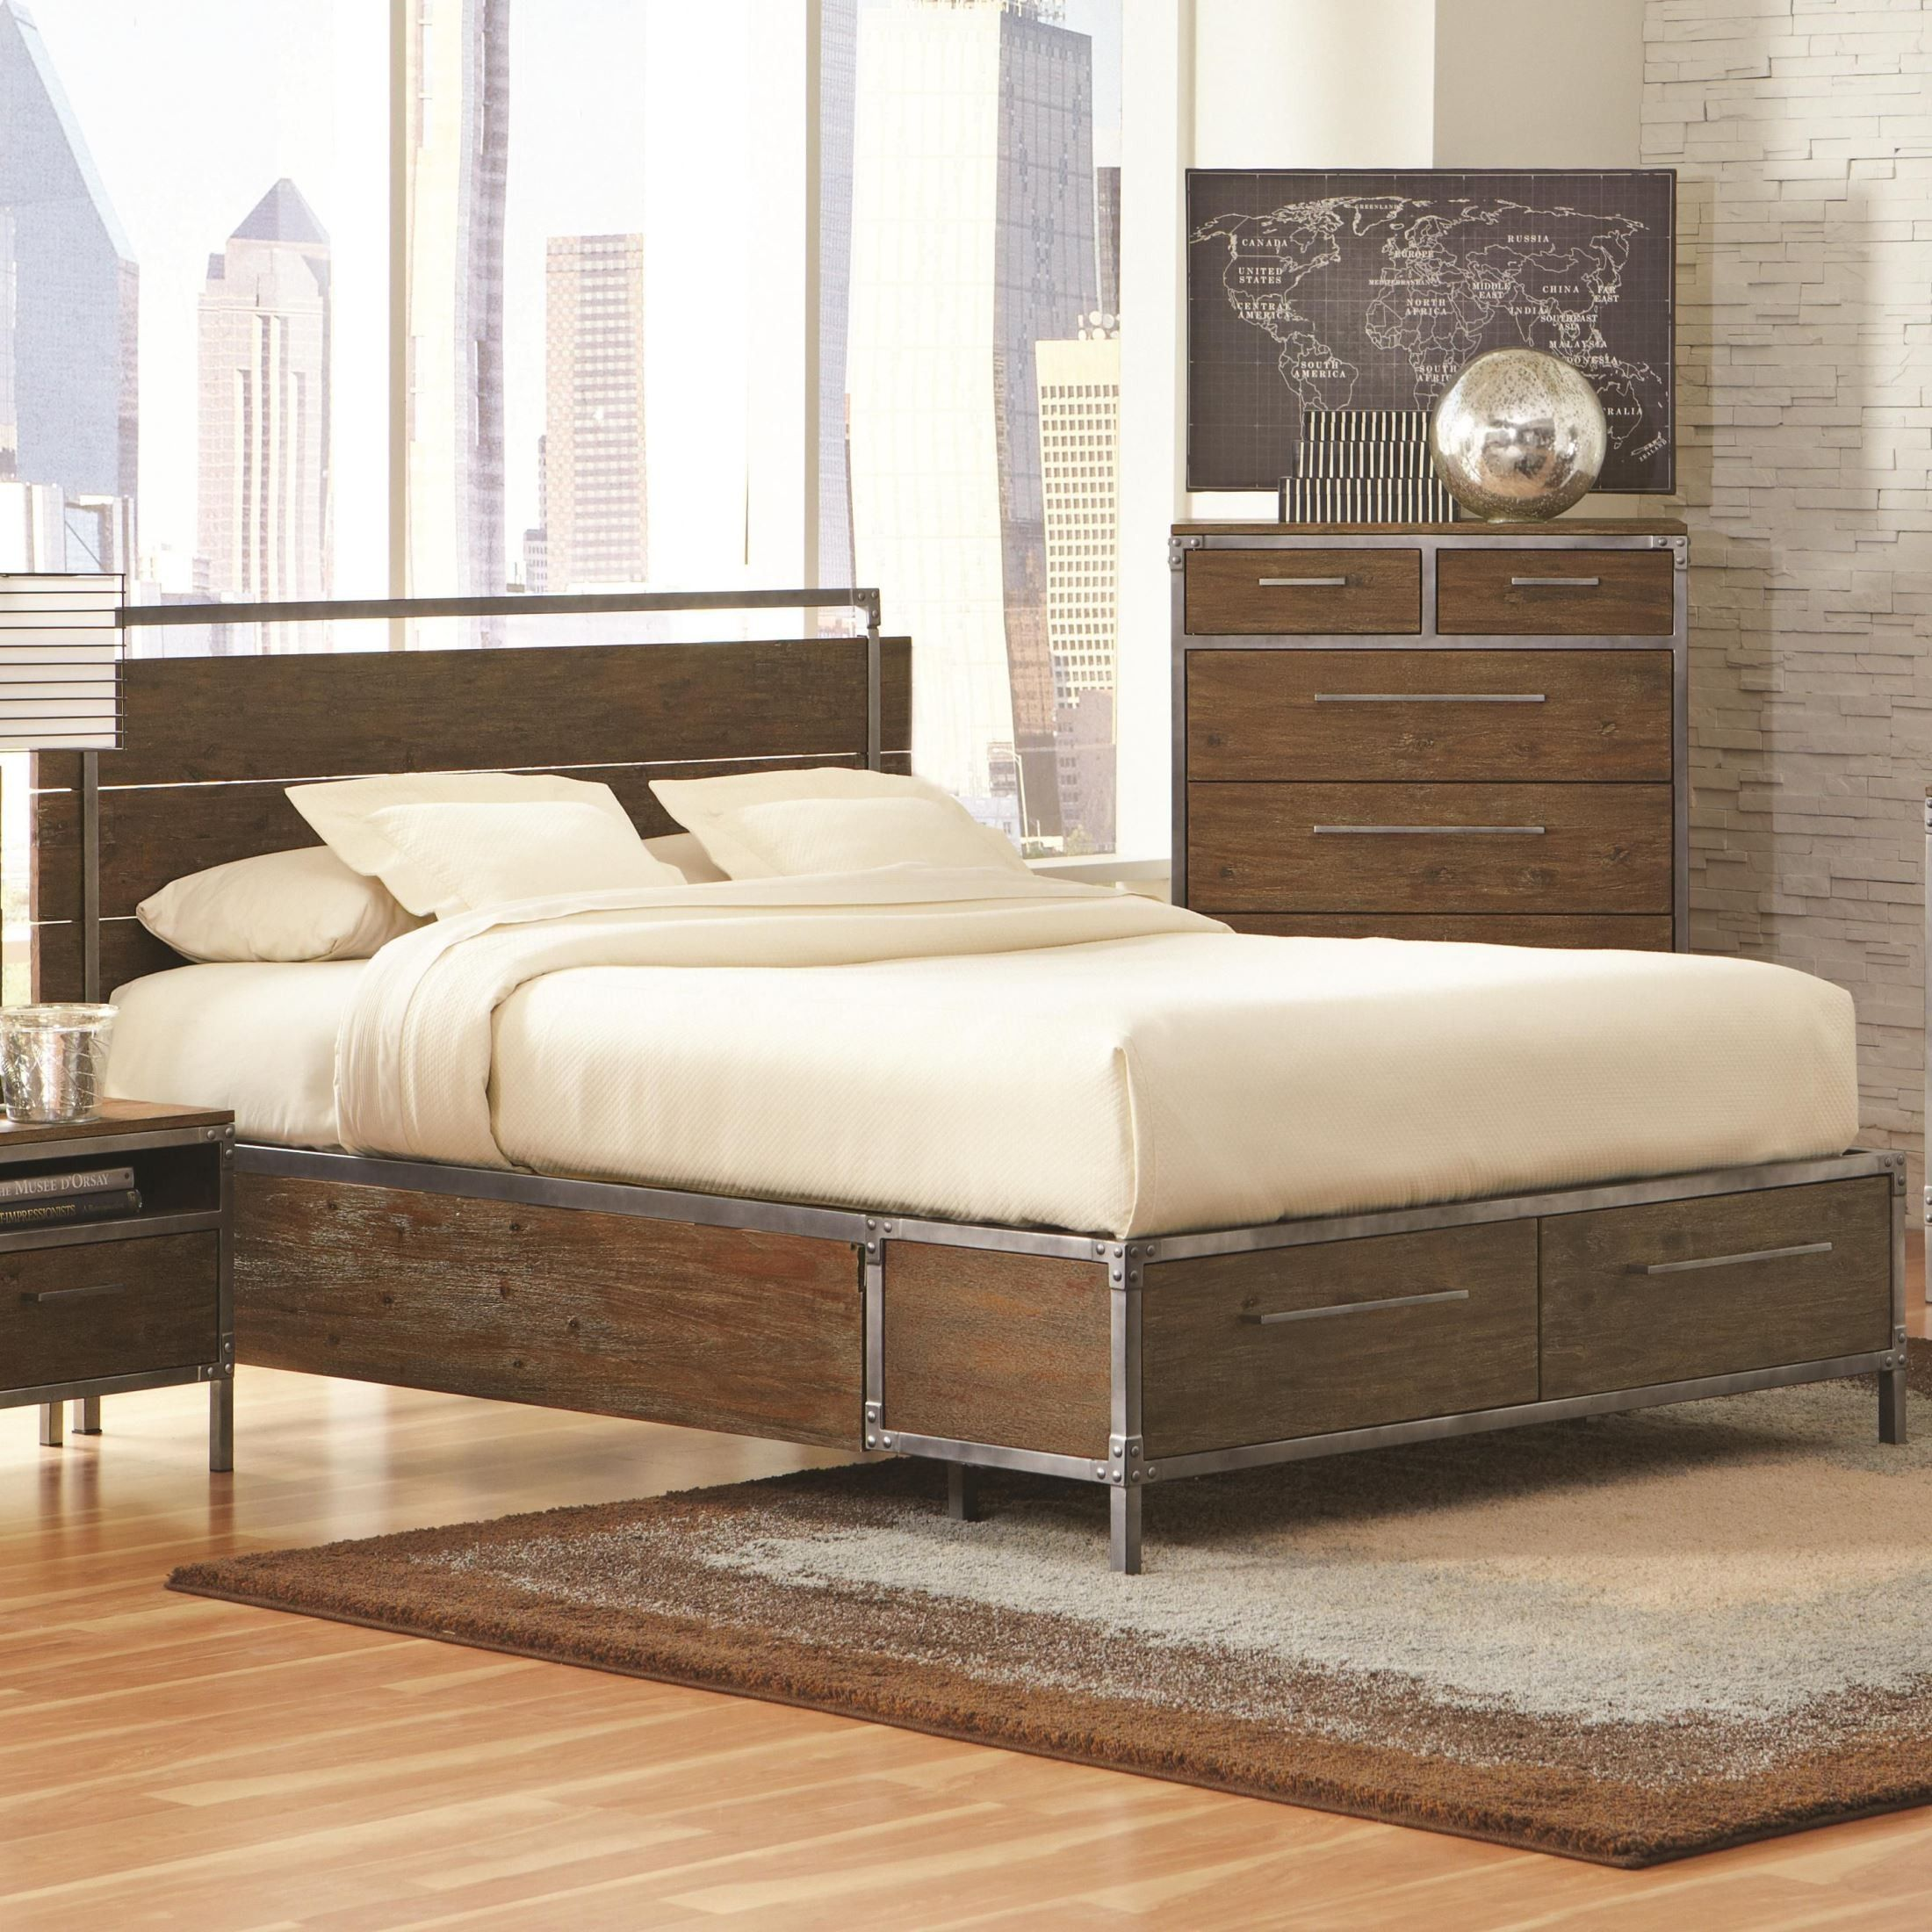 Modern Industrial Bedroom This Edgy Industrial Bed Will Be A Great Focal Point For Your